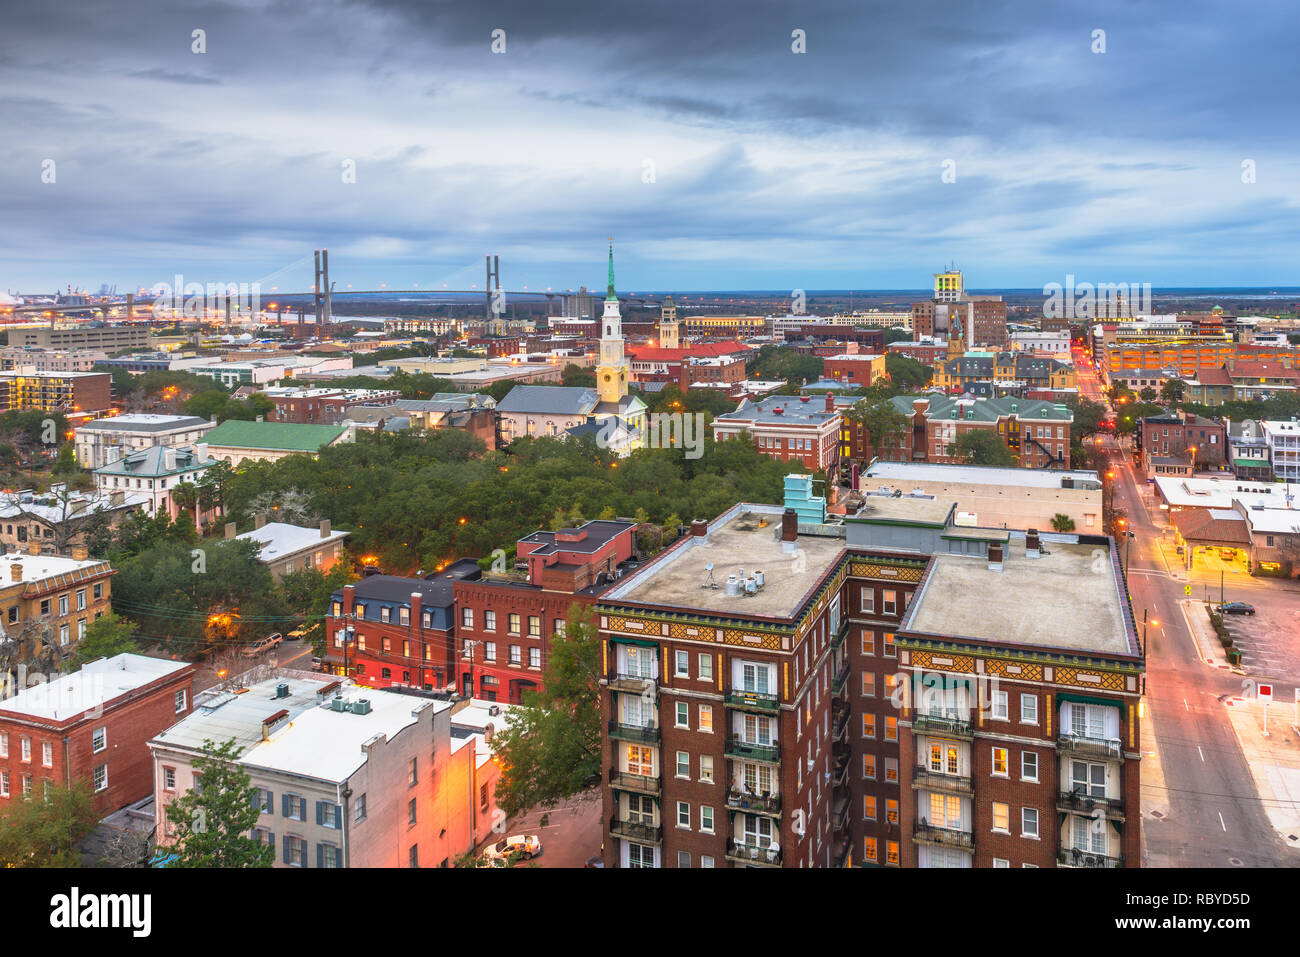 Savannah, Georgia, USA downtown skyline at dusk. - Stock Image